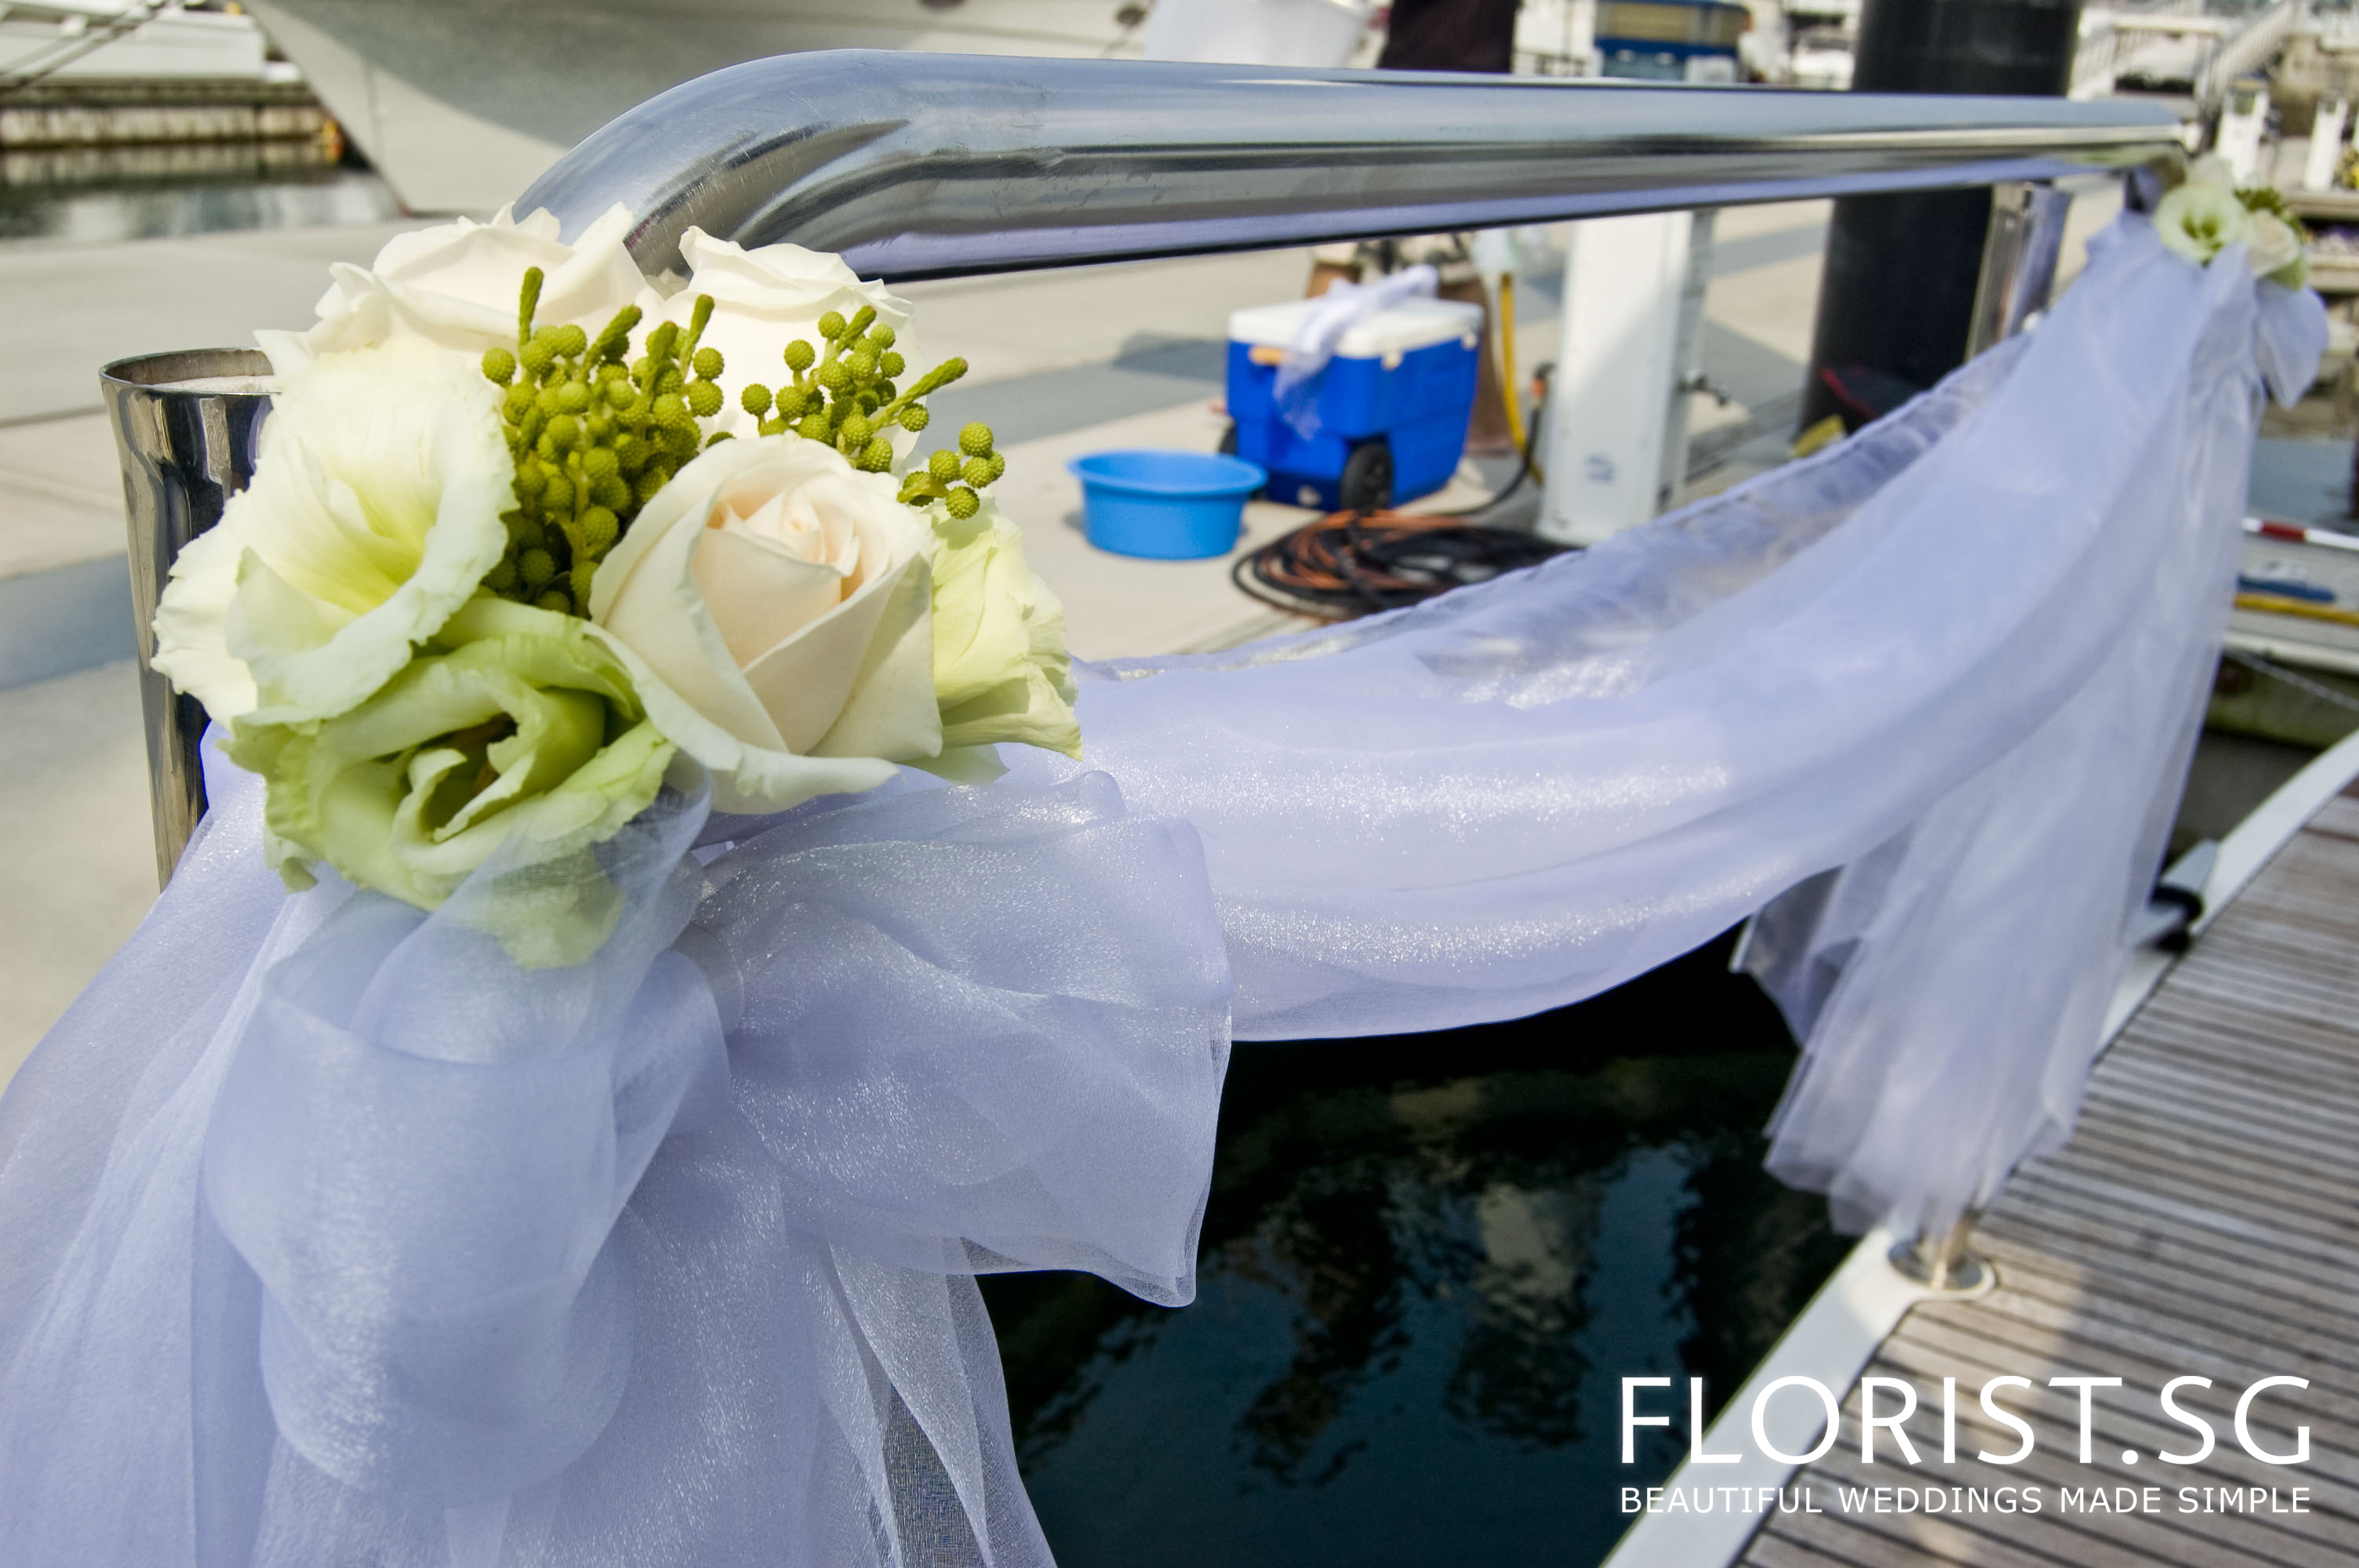 Best Wedding Reception On Sea Duction Yacht Florist Sg This Month